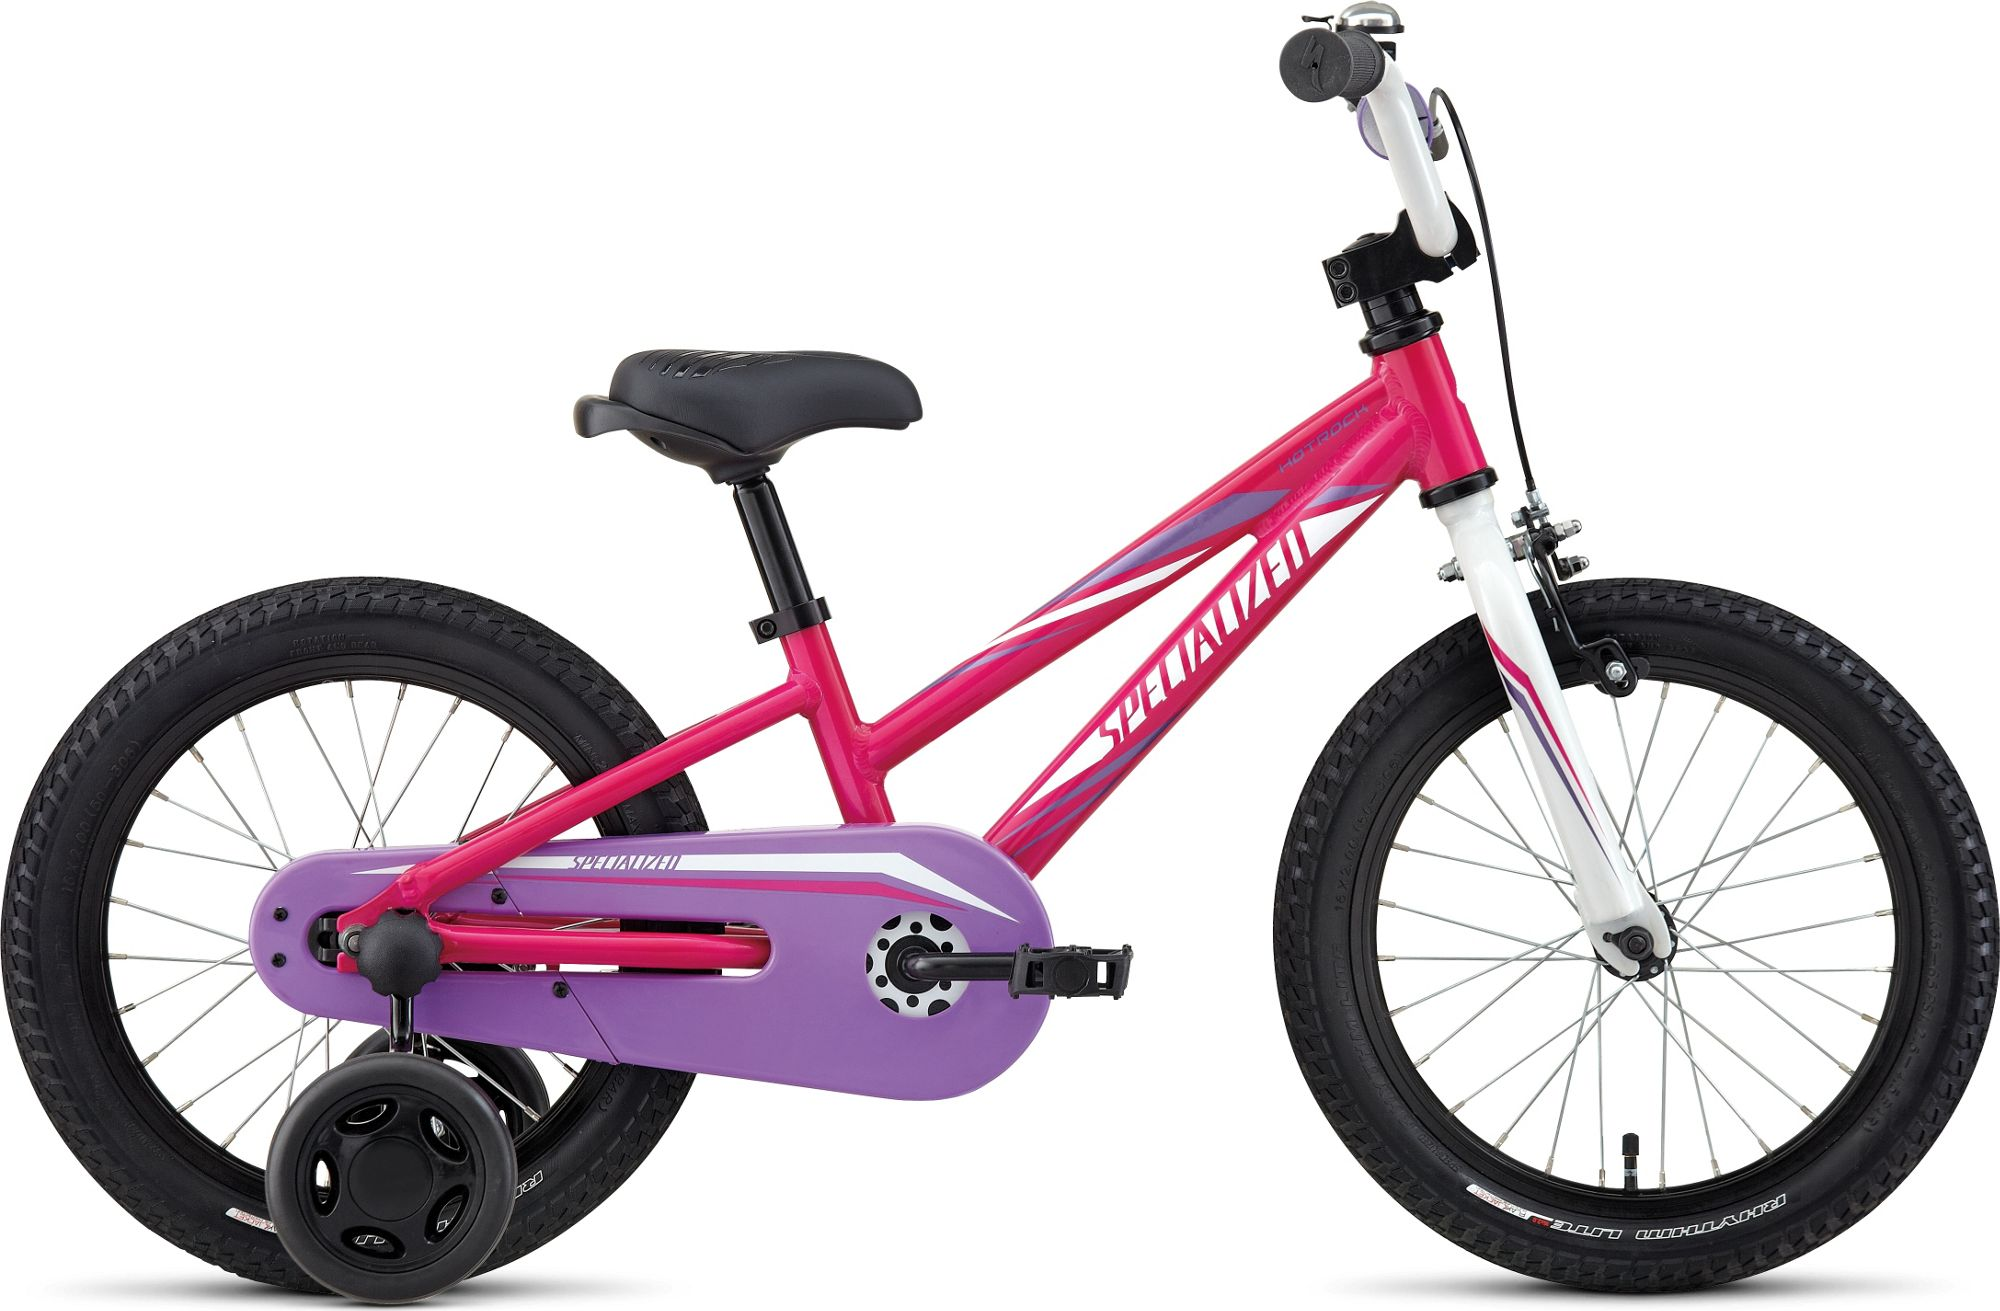 Specialized Hotrock 16 Coaster Girls 2015 Review The